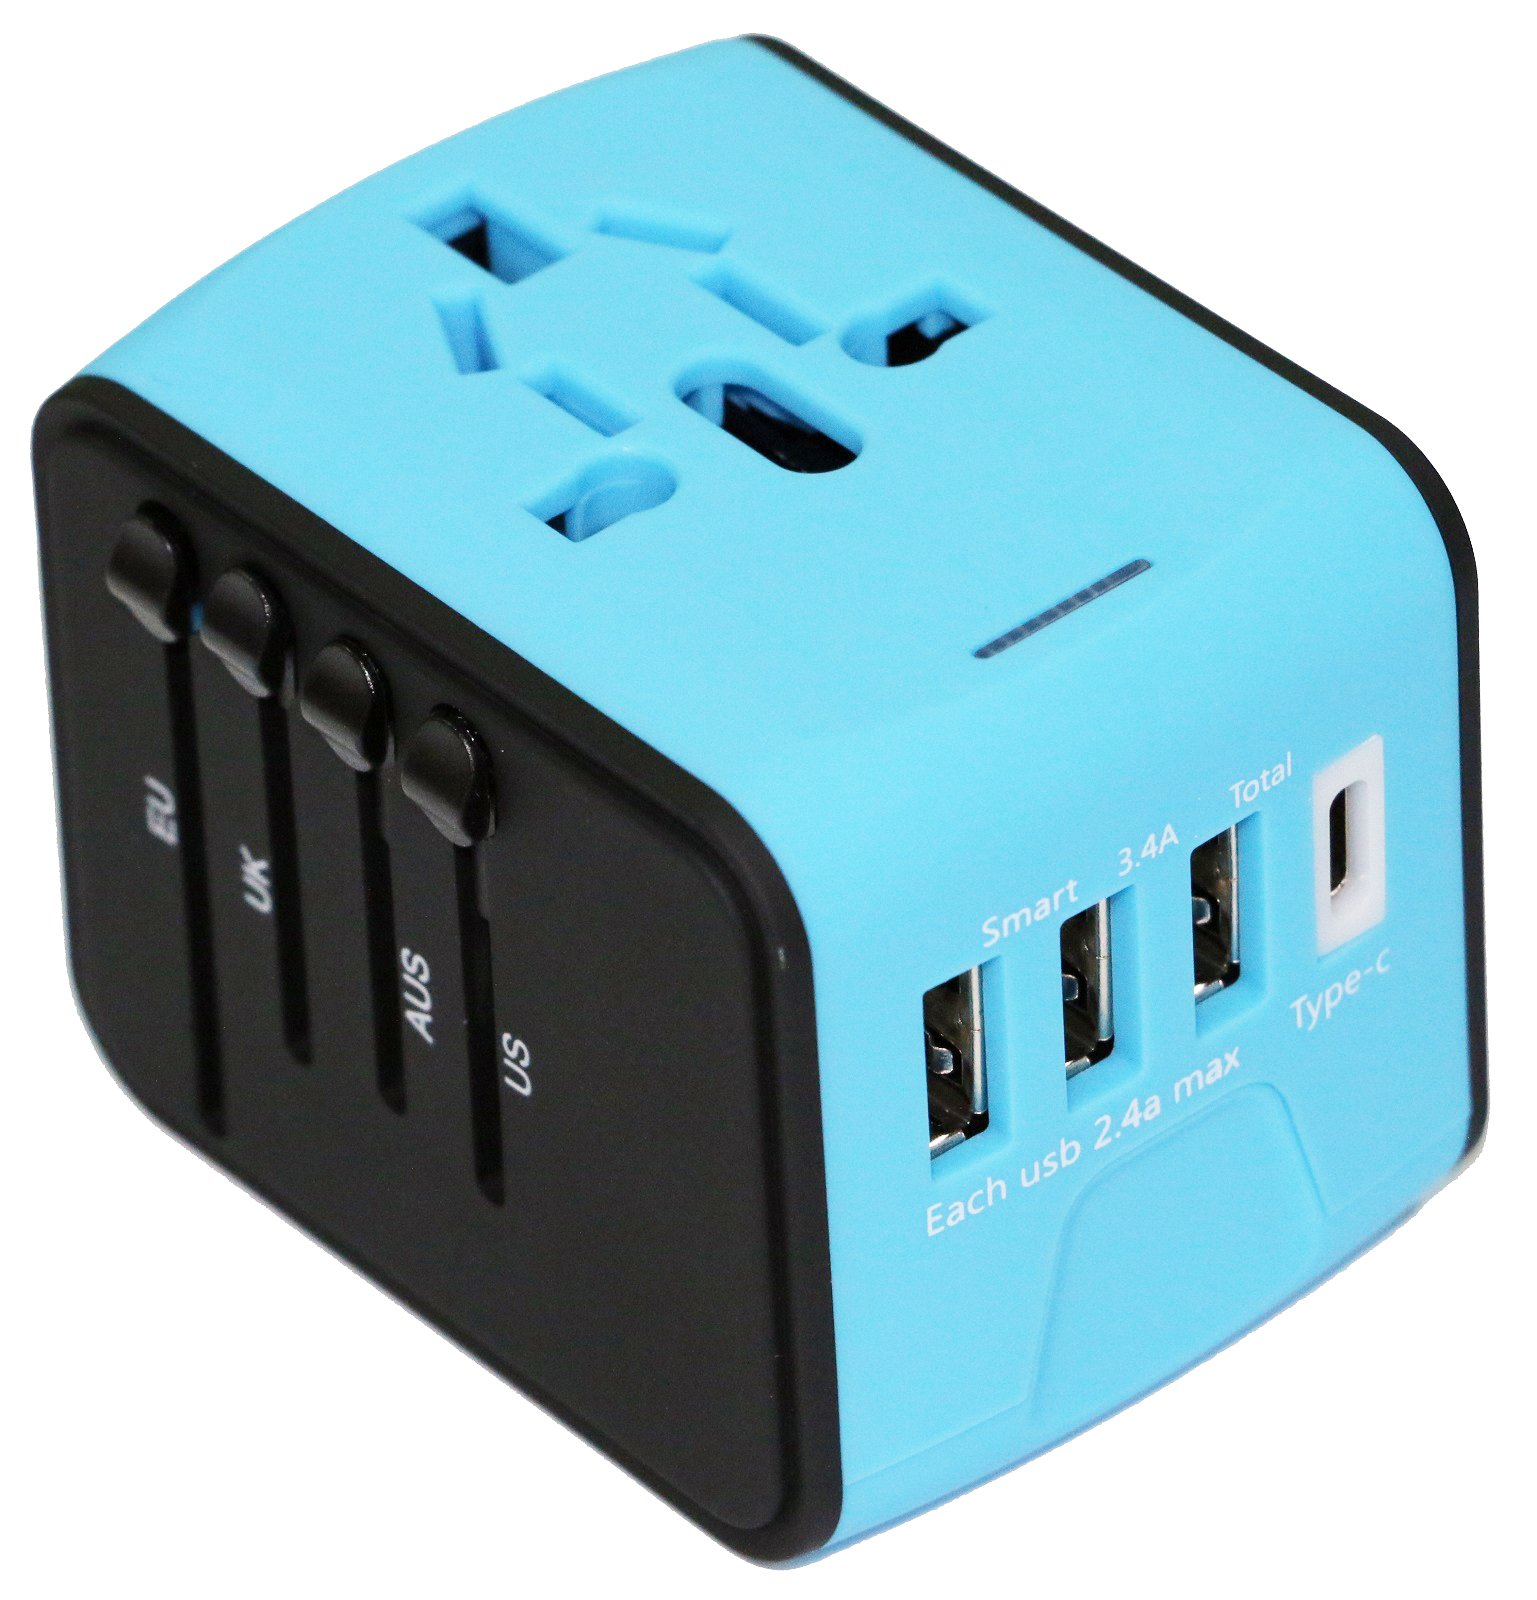 All-In-One International Travel Plug Adapter with 4 USB Ports-Great for iPhone/Smartphone/Laptop